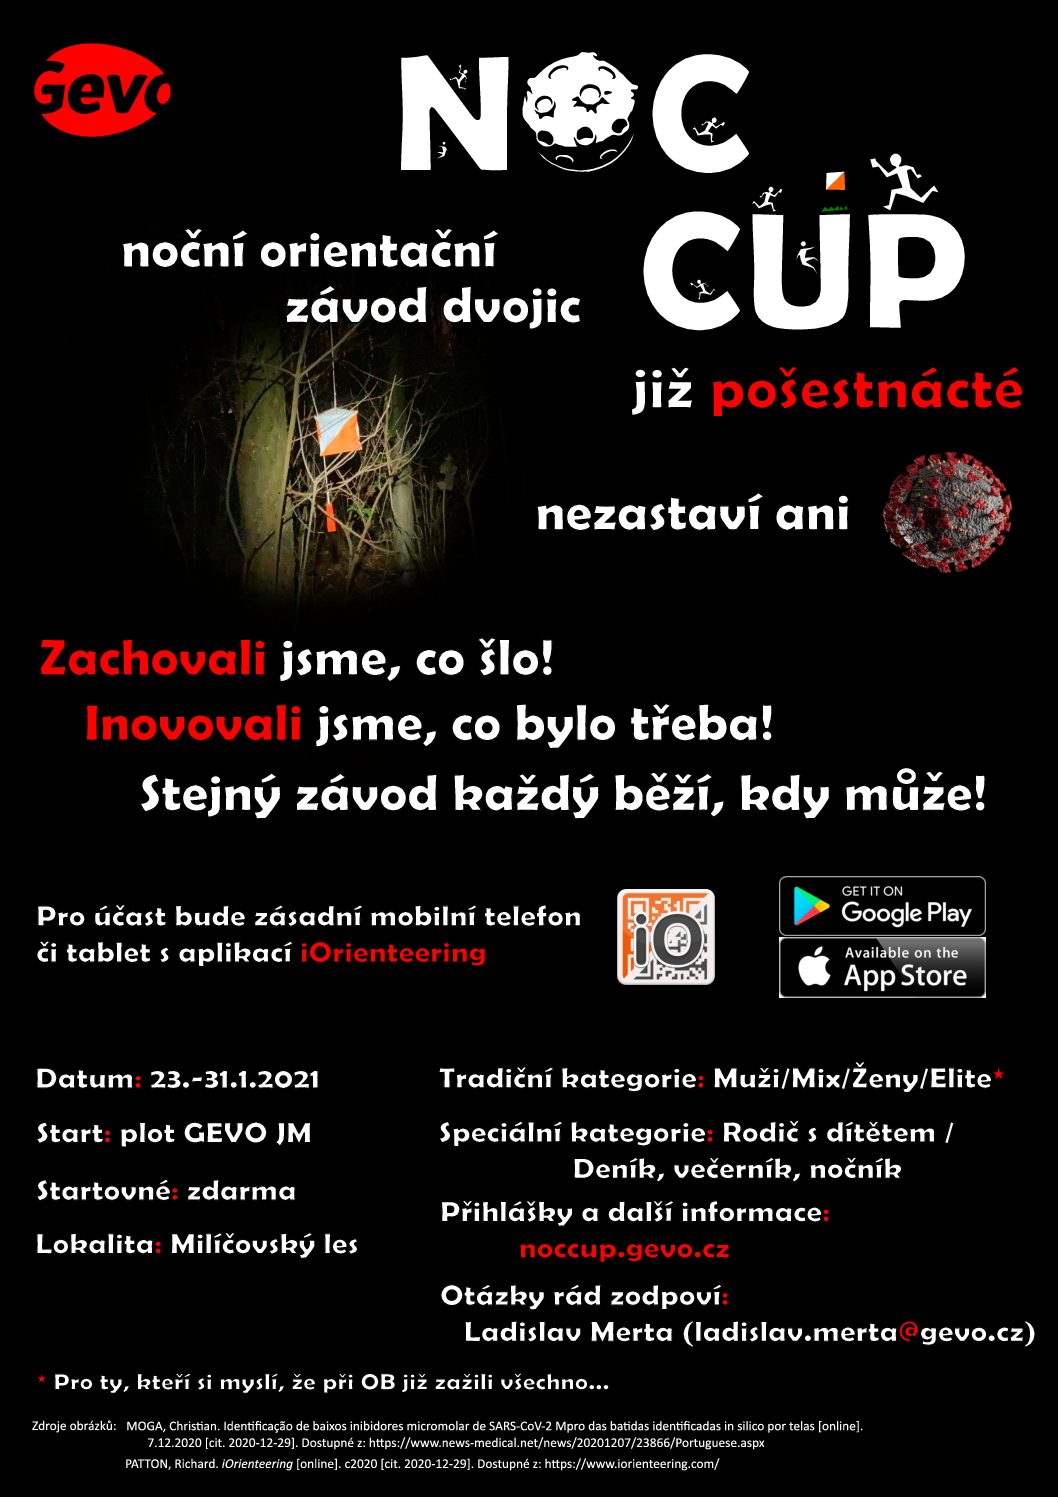 NOC cup 2020 v roce 21